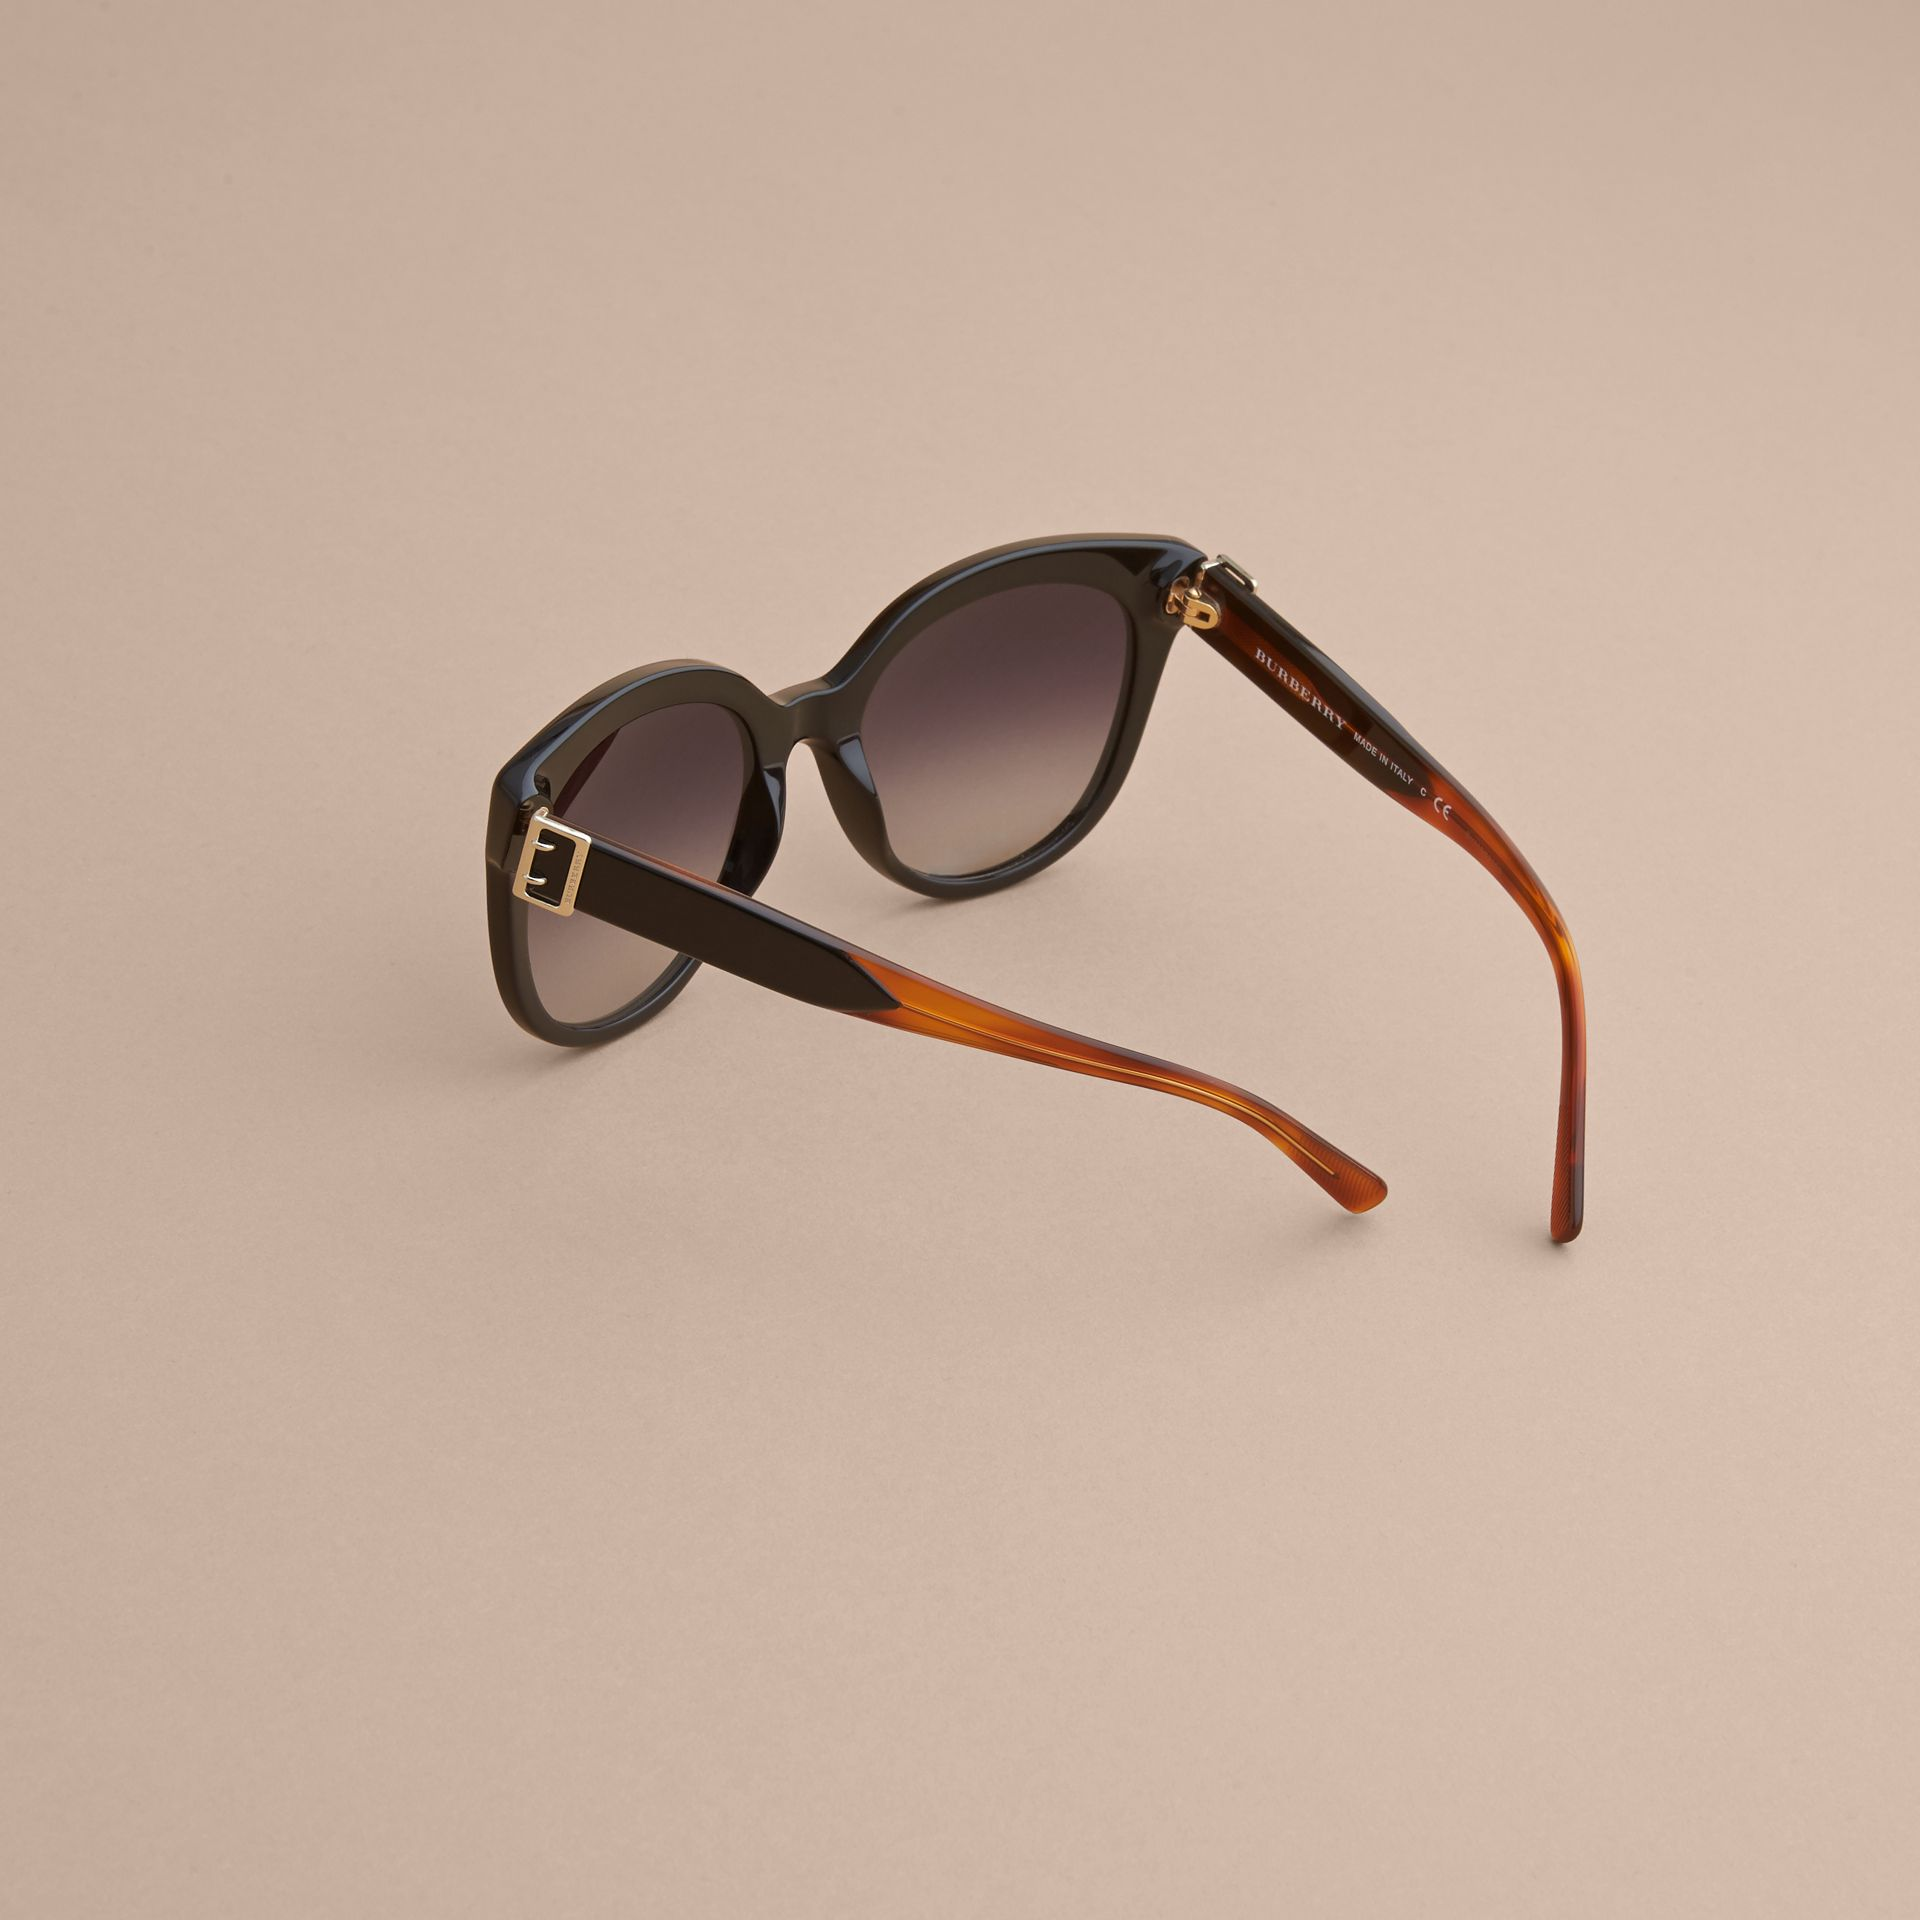 Buckle Detail Cat-eye Frame Sunglasses in Black - Women | Burberry Australia - gallery image 3